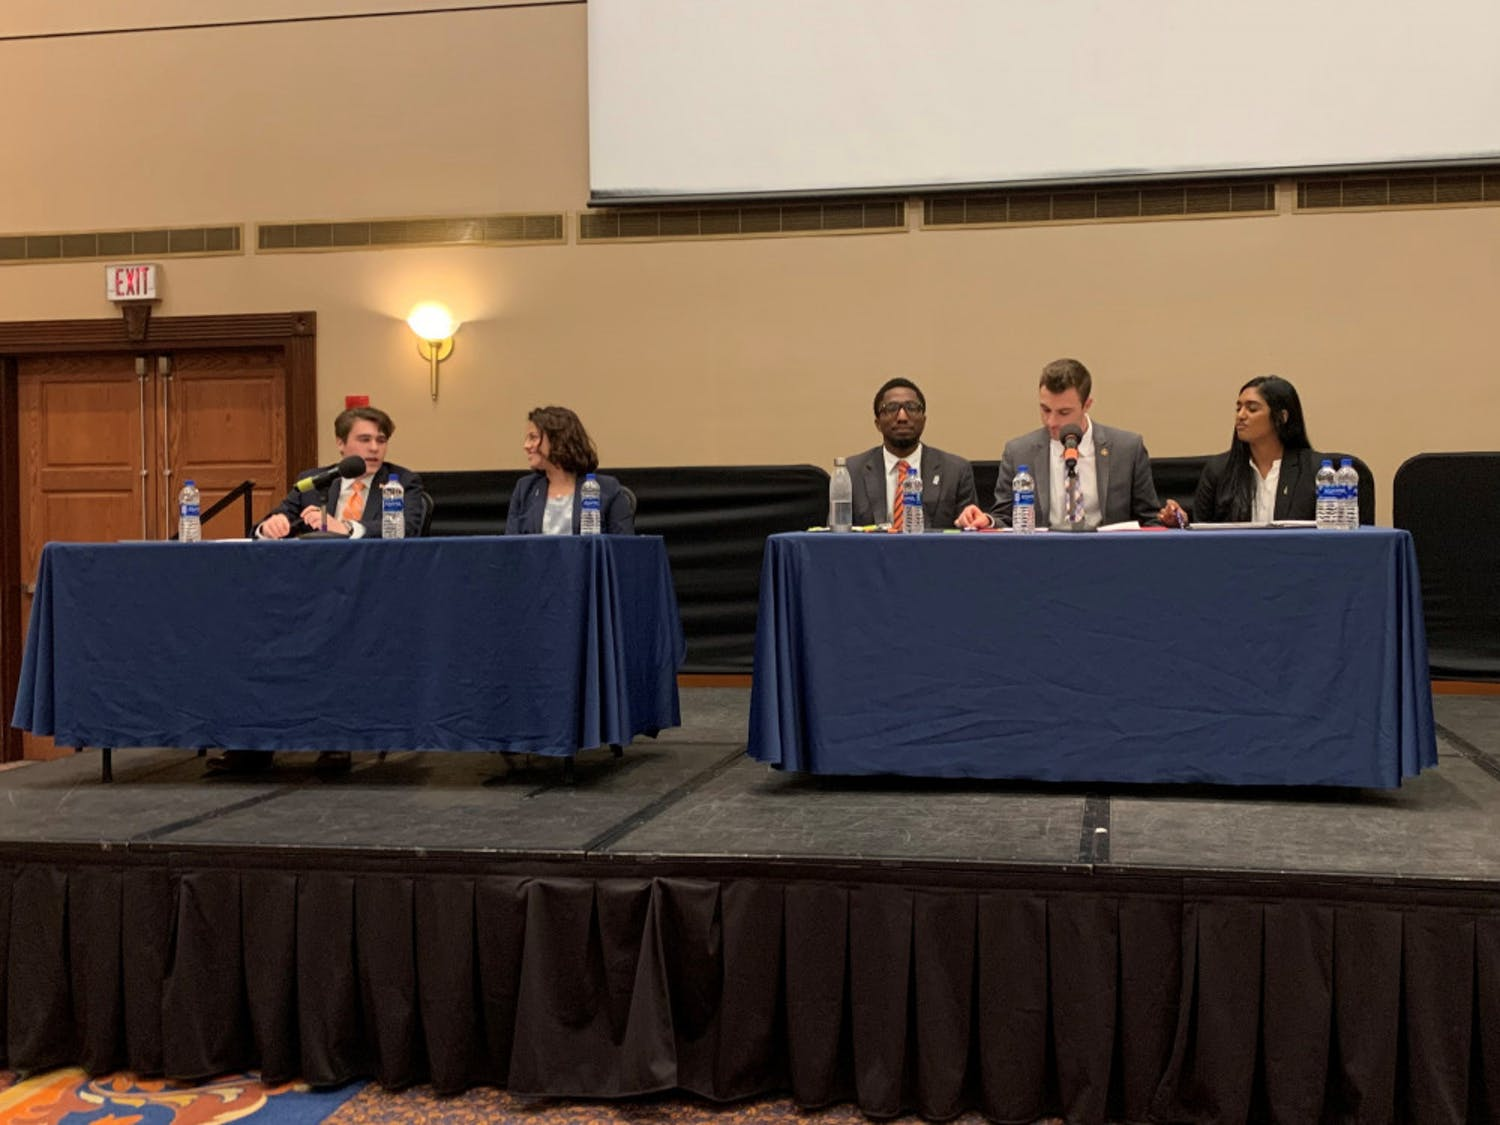 Inspire (left) and Gator Party (right) executive candidates argued in their first Student Government debate.